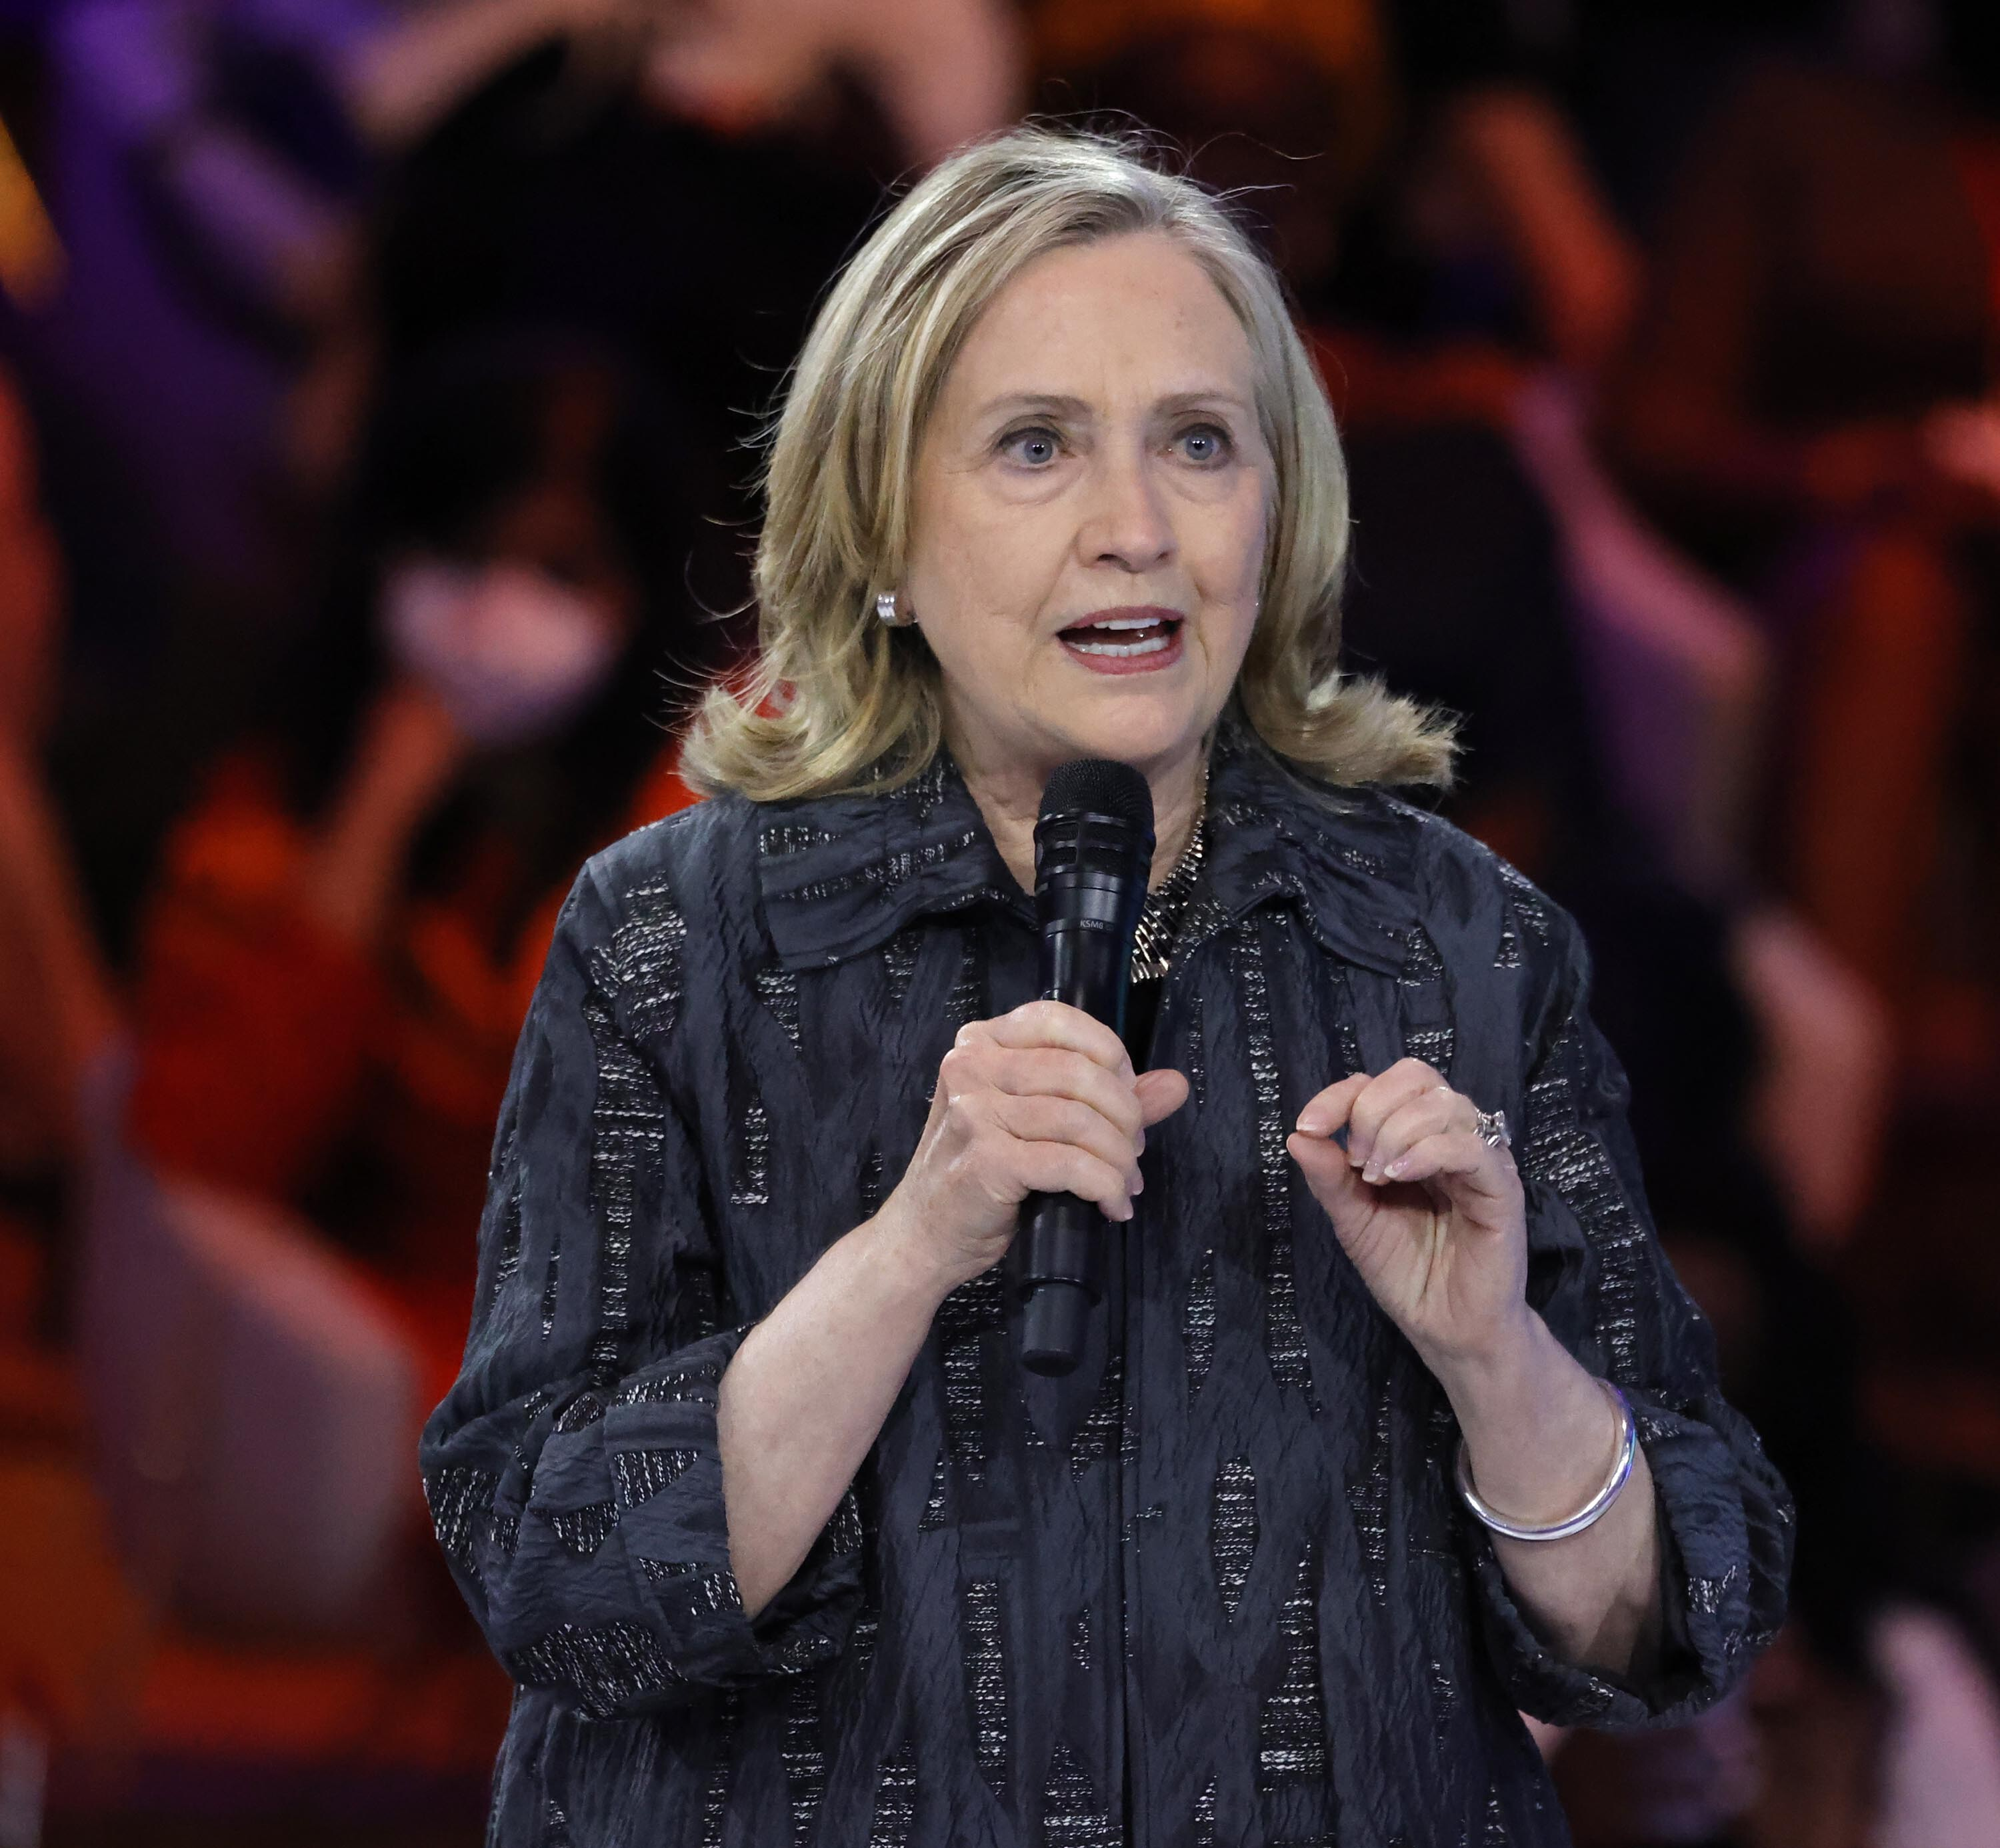 Hillary Clinton: 'We are witnessing a concerted attempt to destabilize the democratic process'